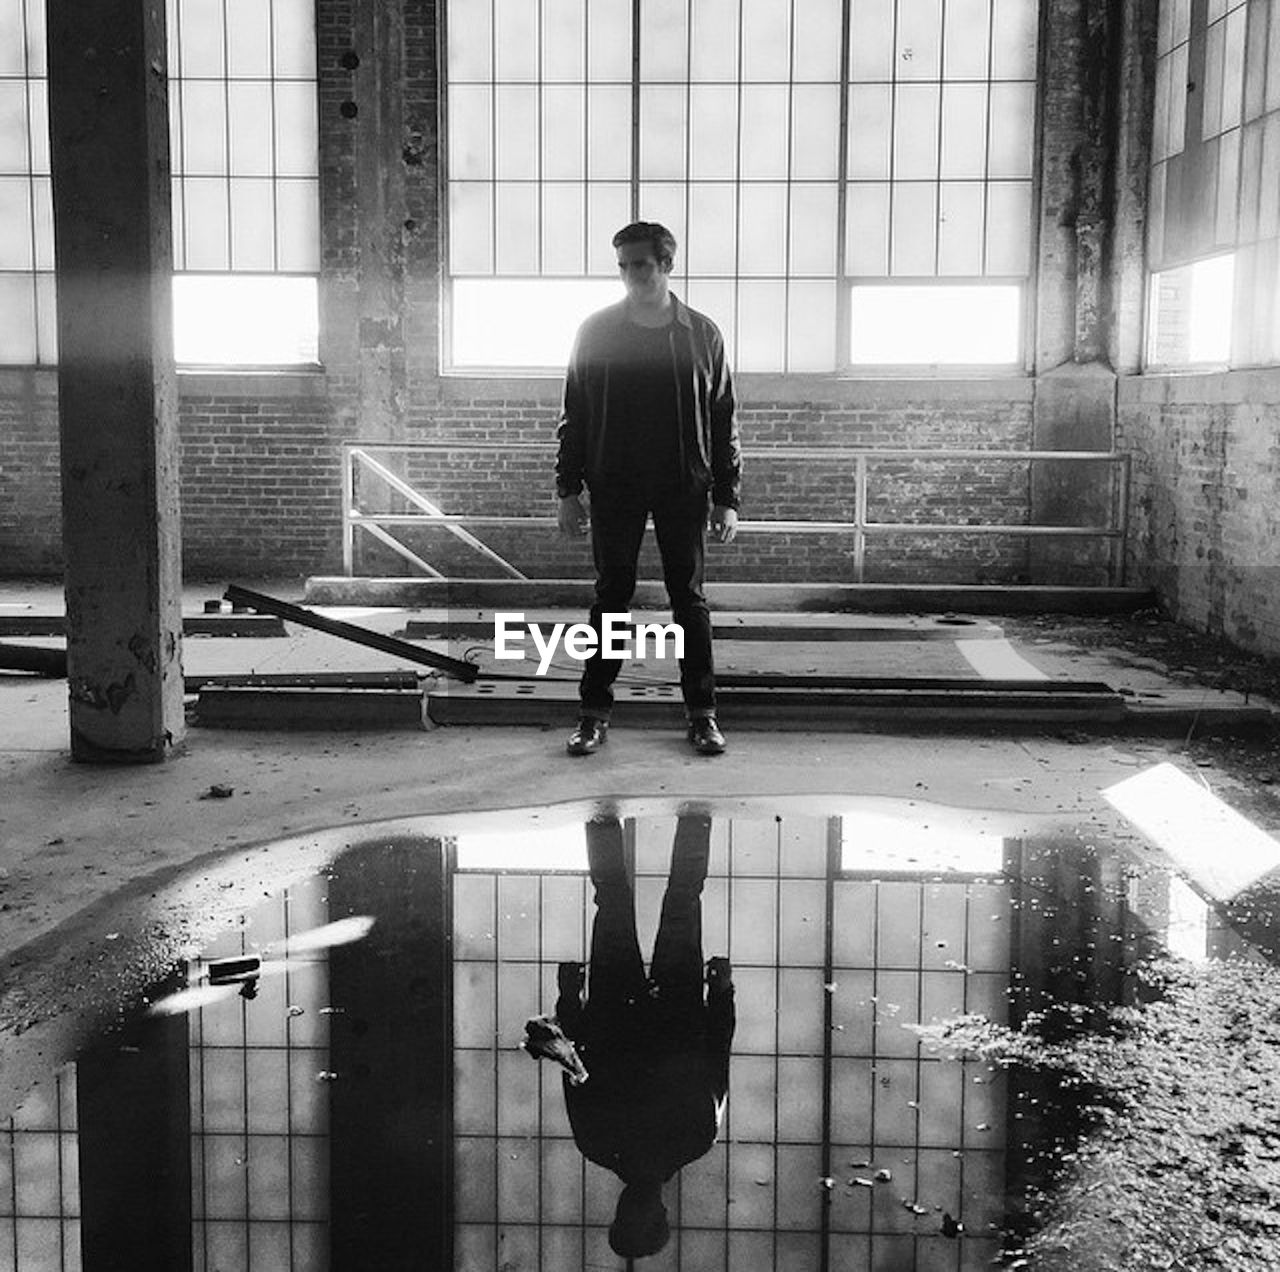 Man Standing By Puddle In Abandoned Building